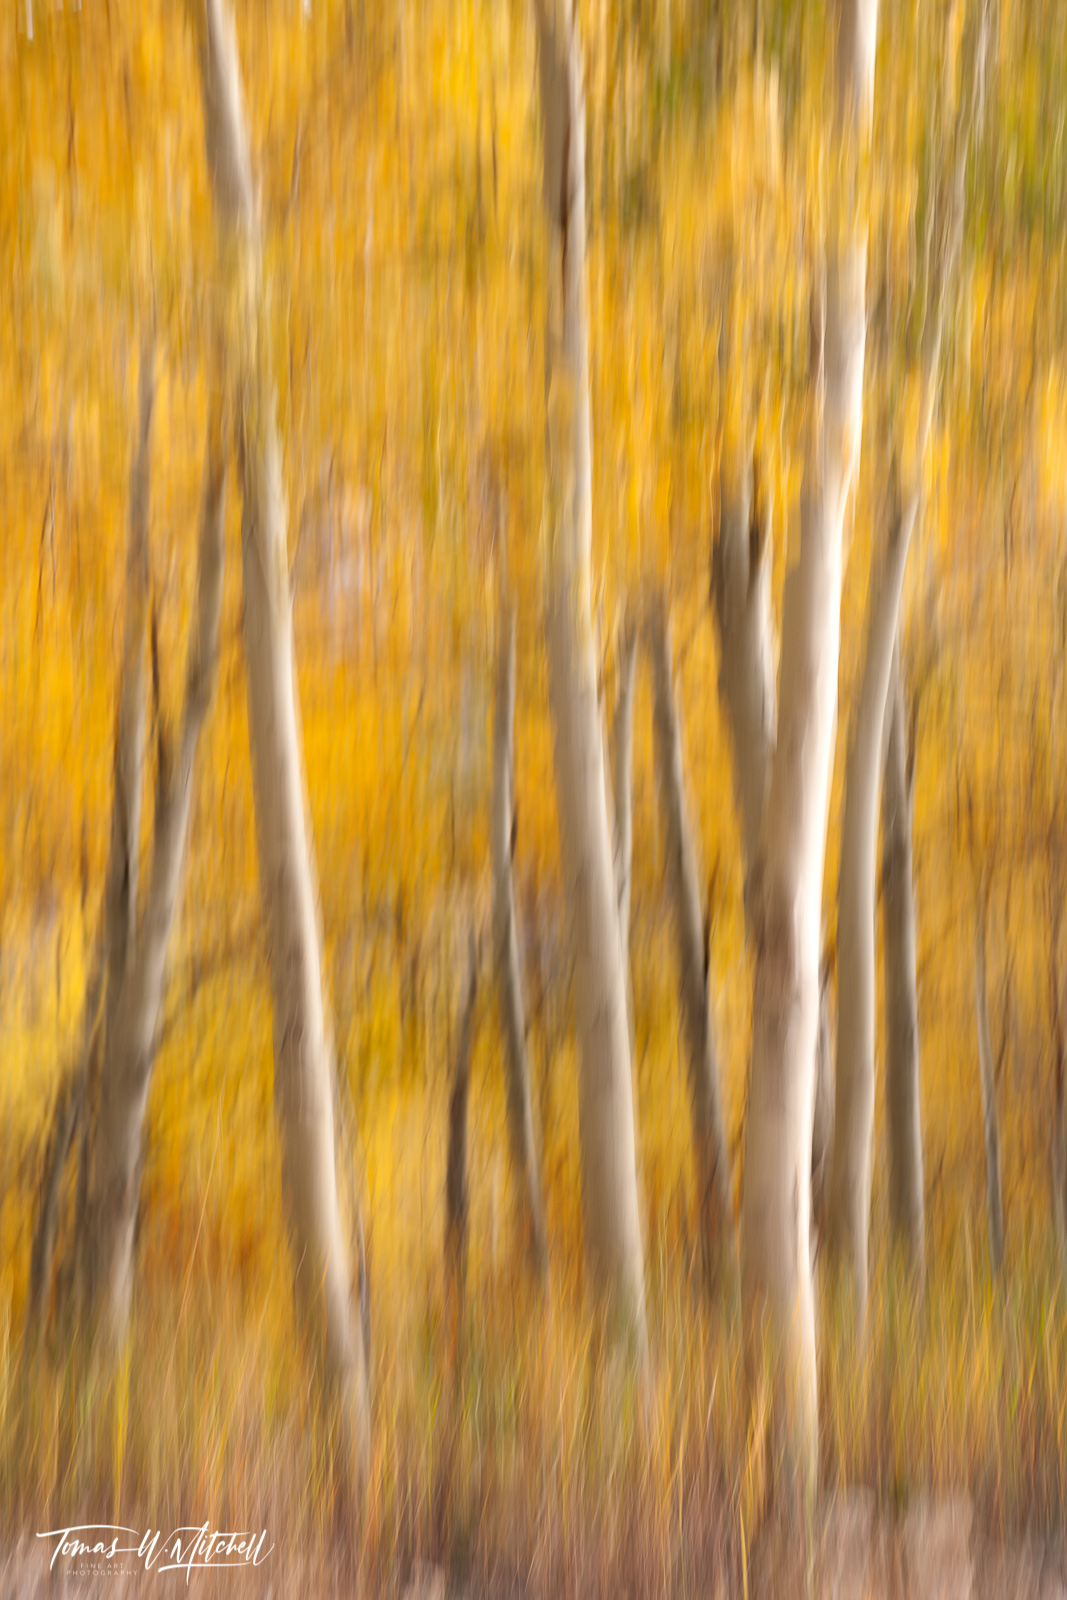 limited edition, fine art, prints, lamoille canoyn, nevada, national forest, icm, trees, abstract, photograph, grass, brush strokes, aspen trees, yellow leaves, golden, photo